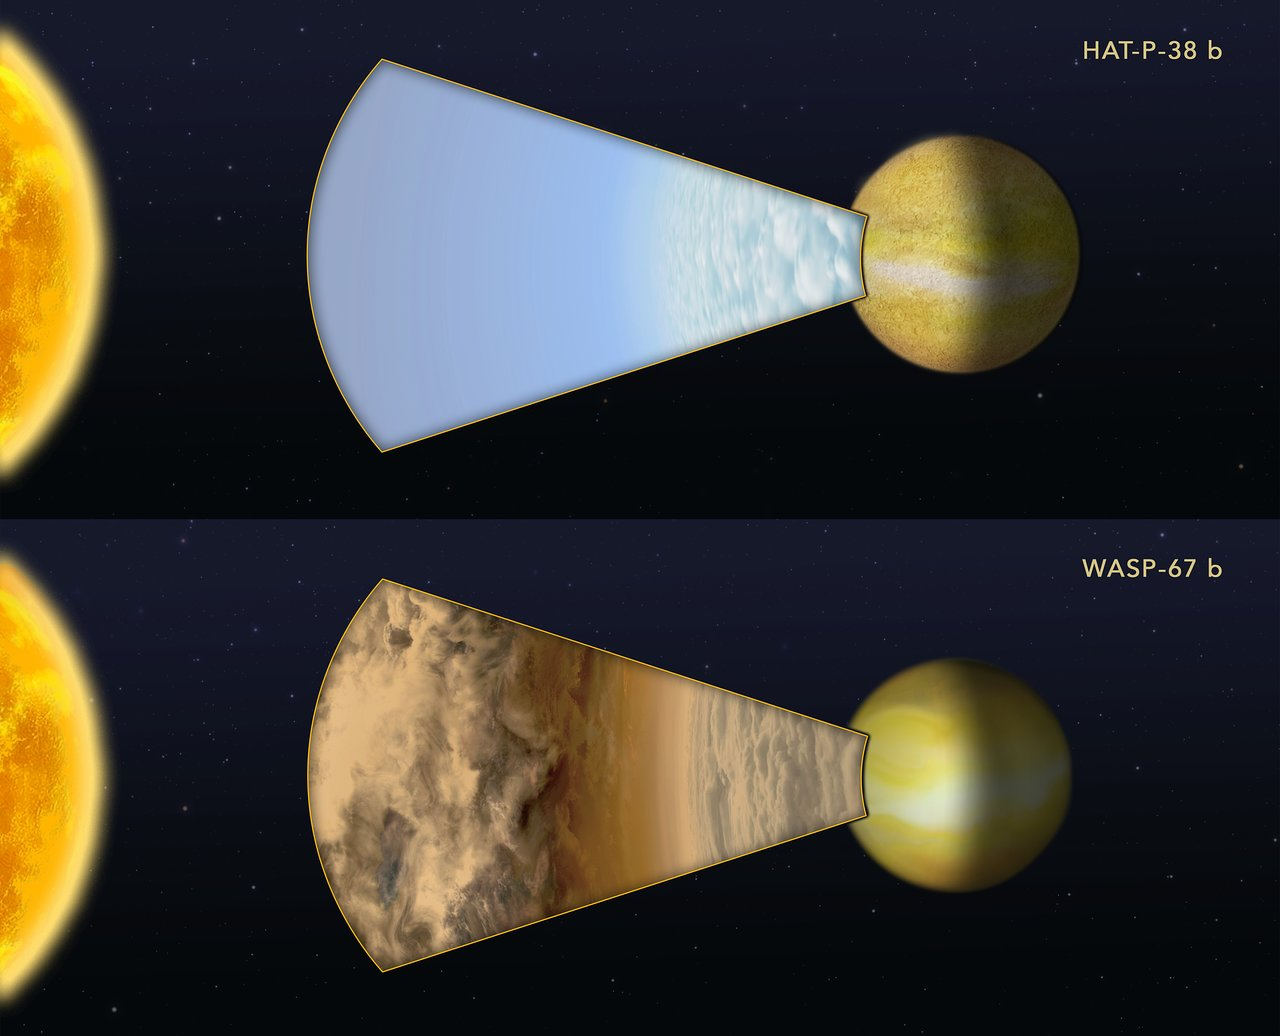 Cloudy versus clear atmospheres on two exoplanets